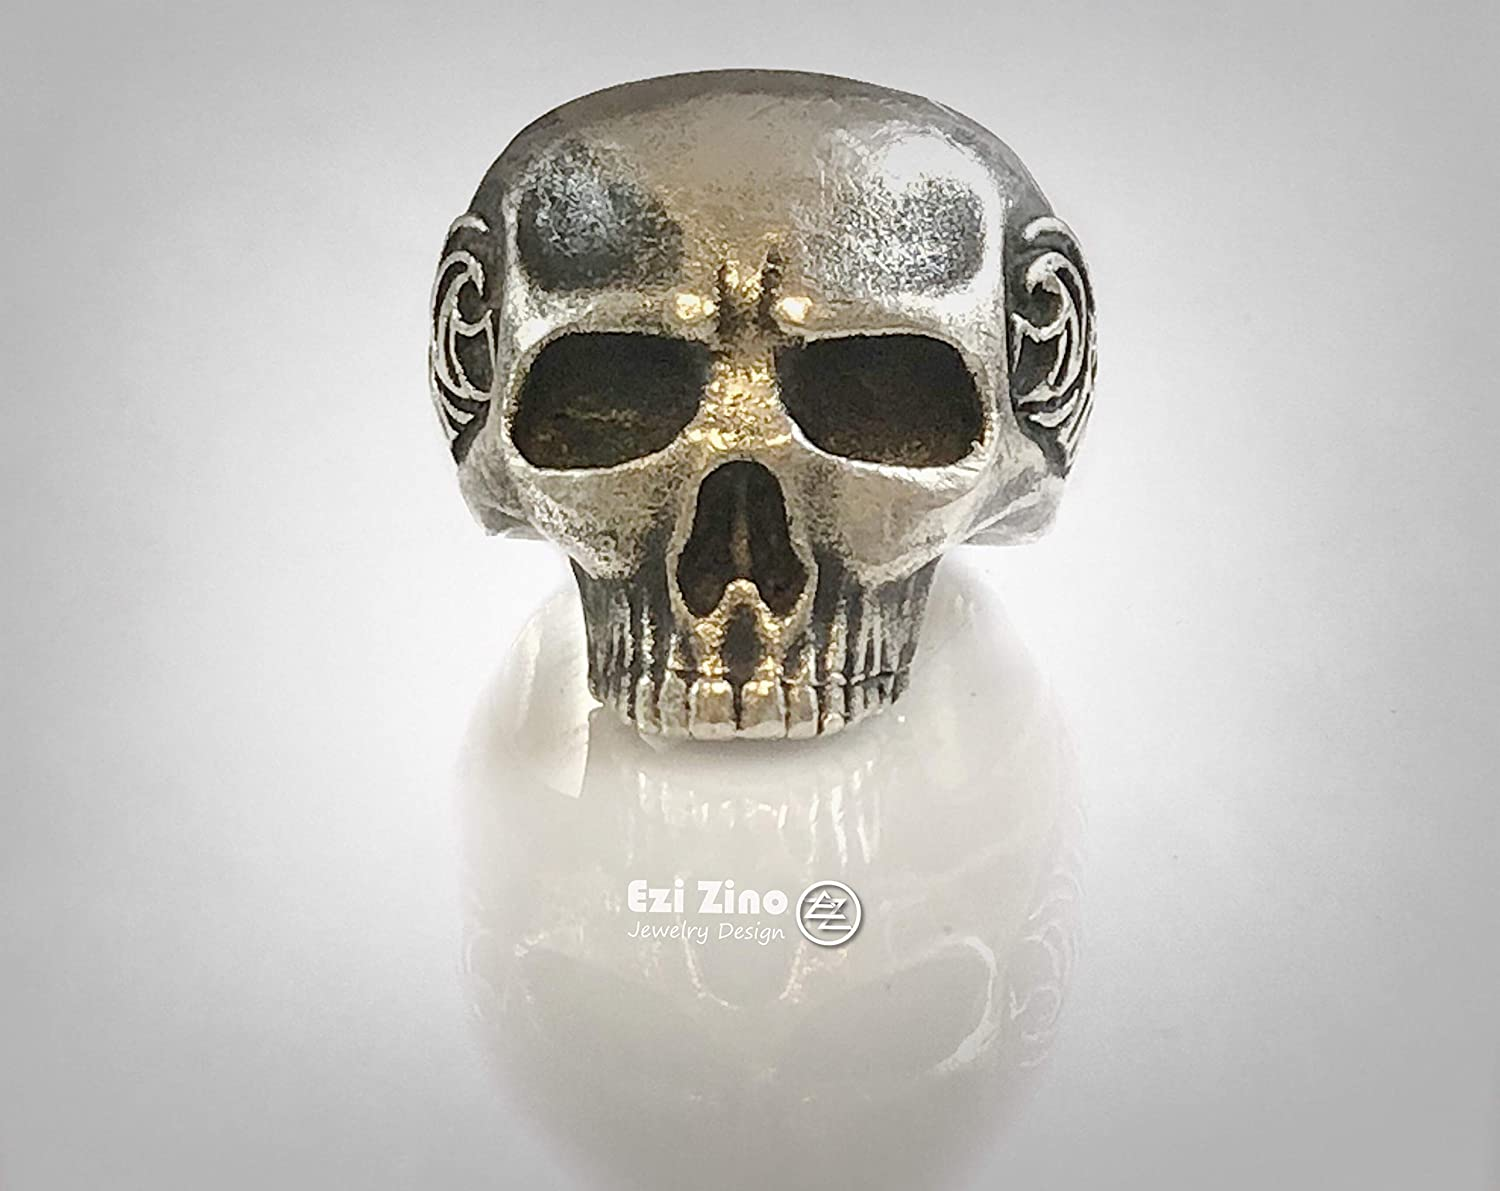 SILVERLAND1 Waves Skull Solid Sterling Silver 925 Ring by Ezi Zino